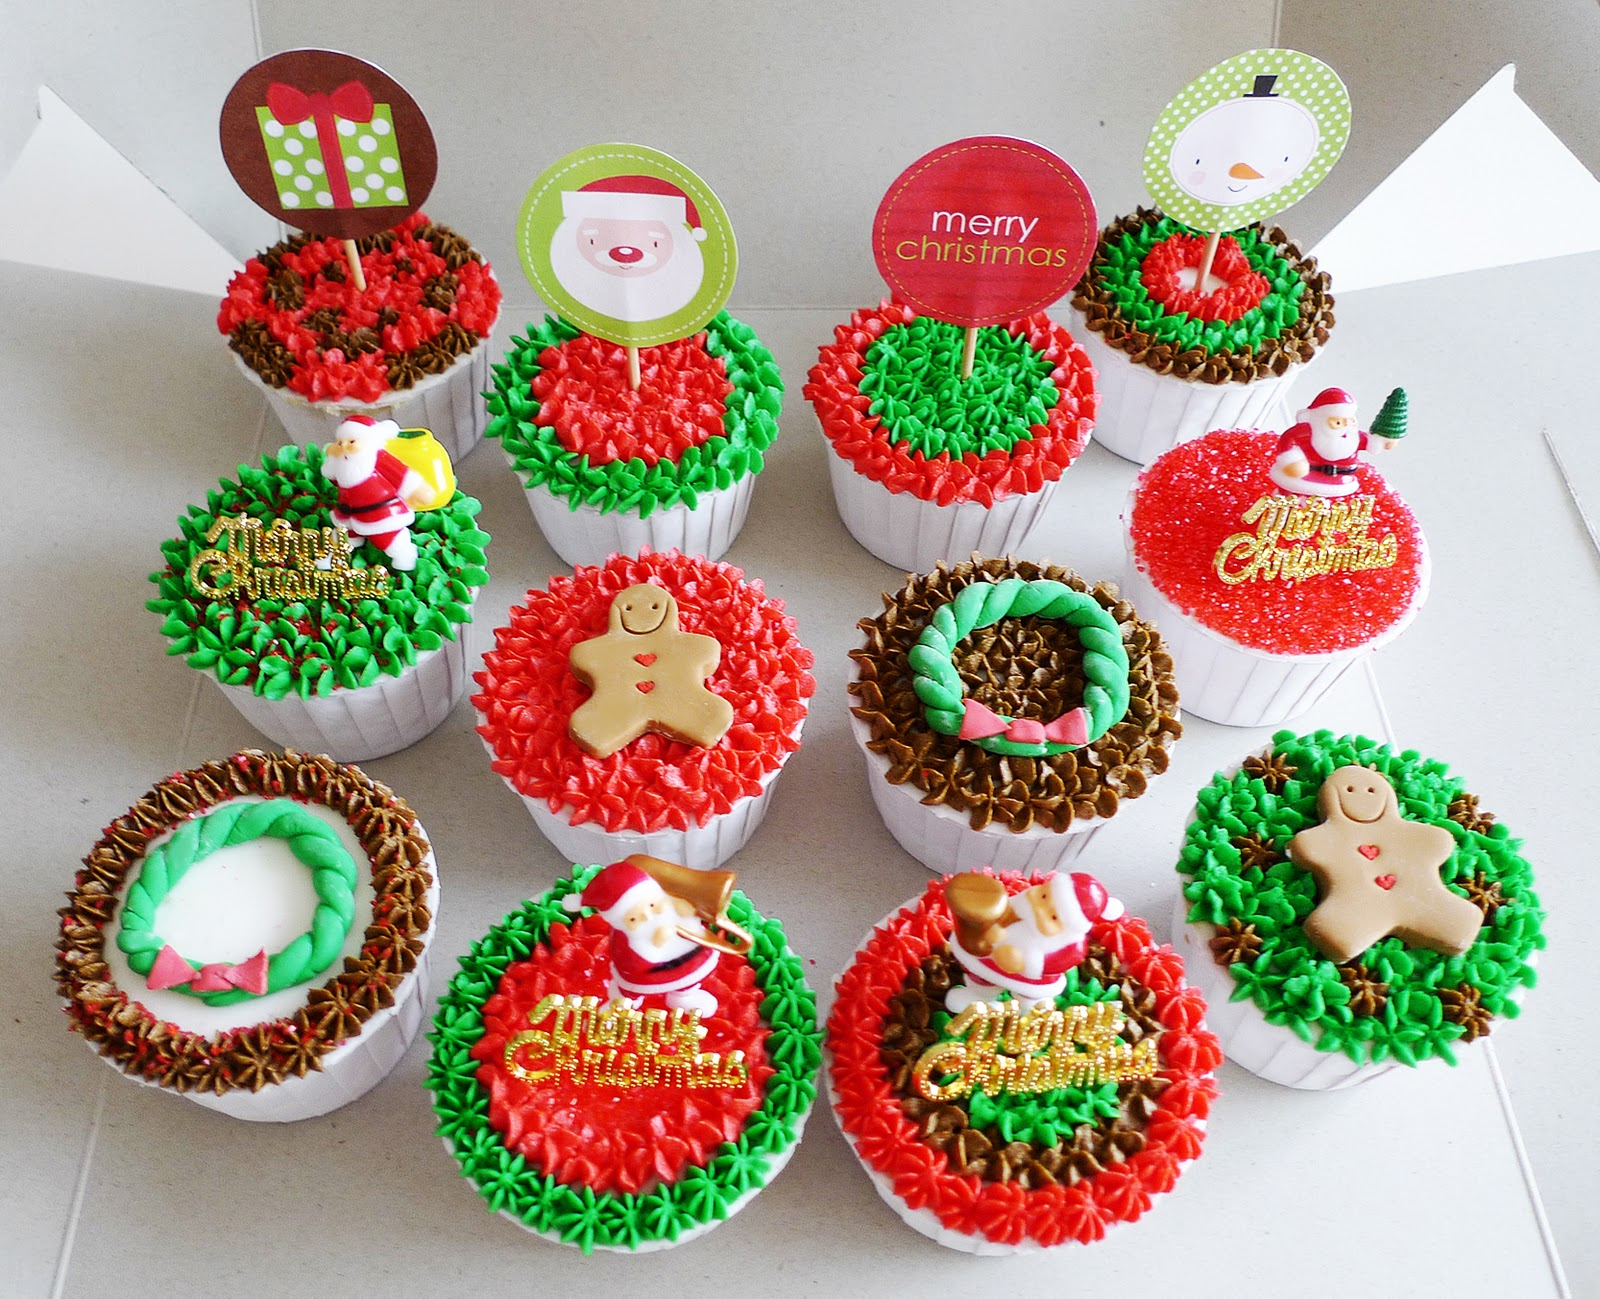 Christmas Cupcake Decorations : Christmas Designs! Cakes, cupcakes and other sweet ...